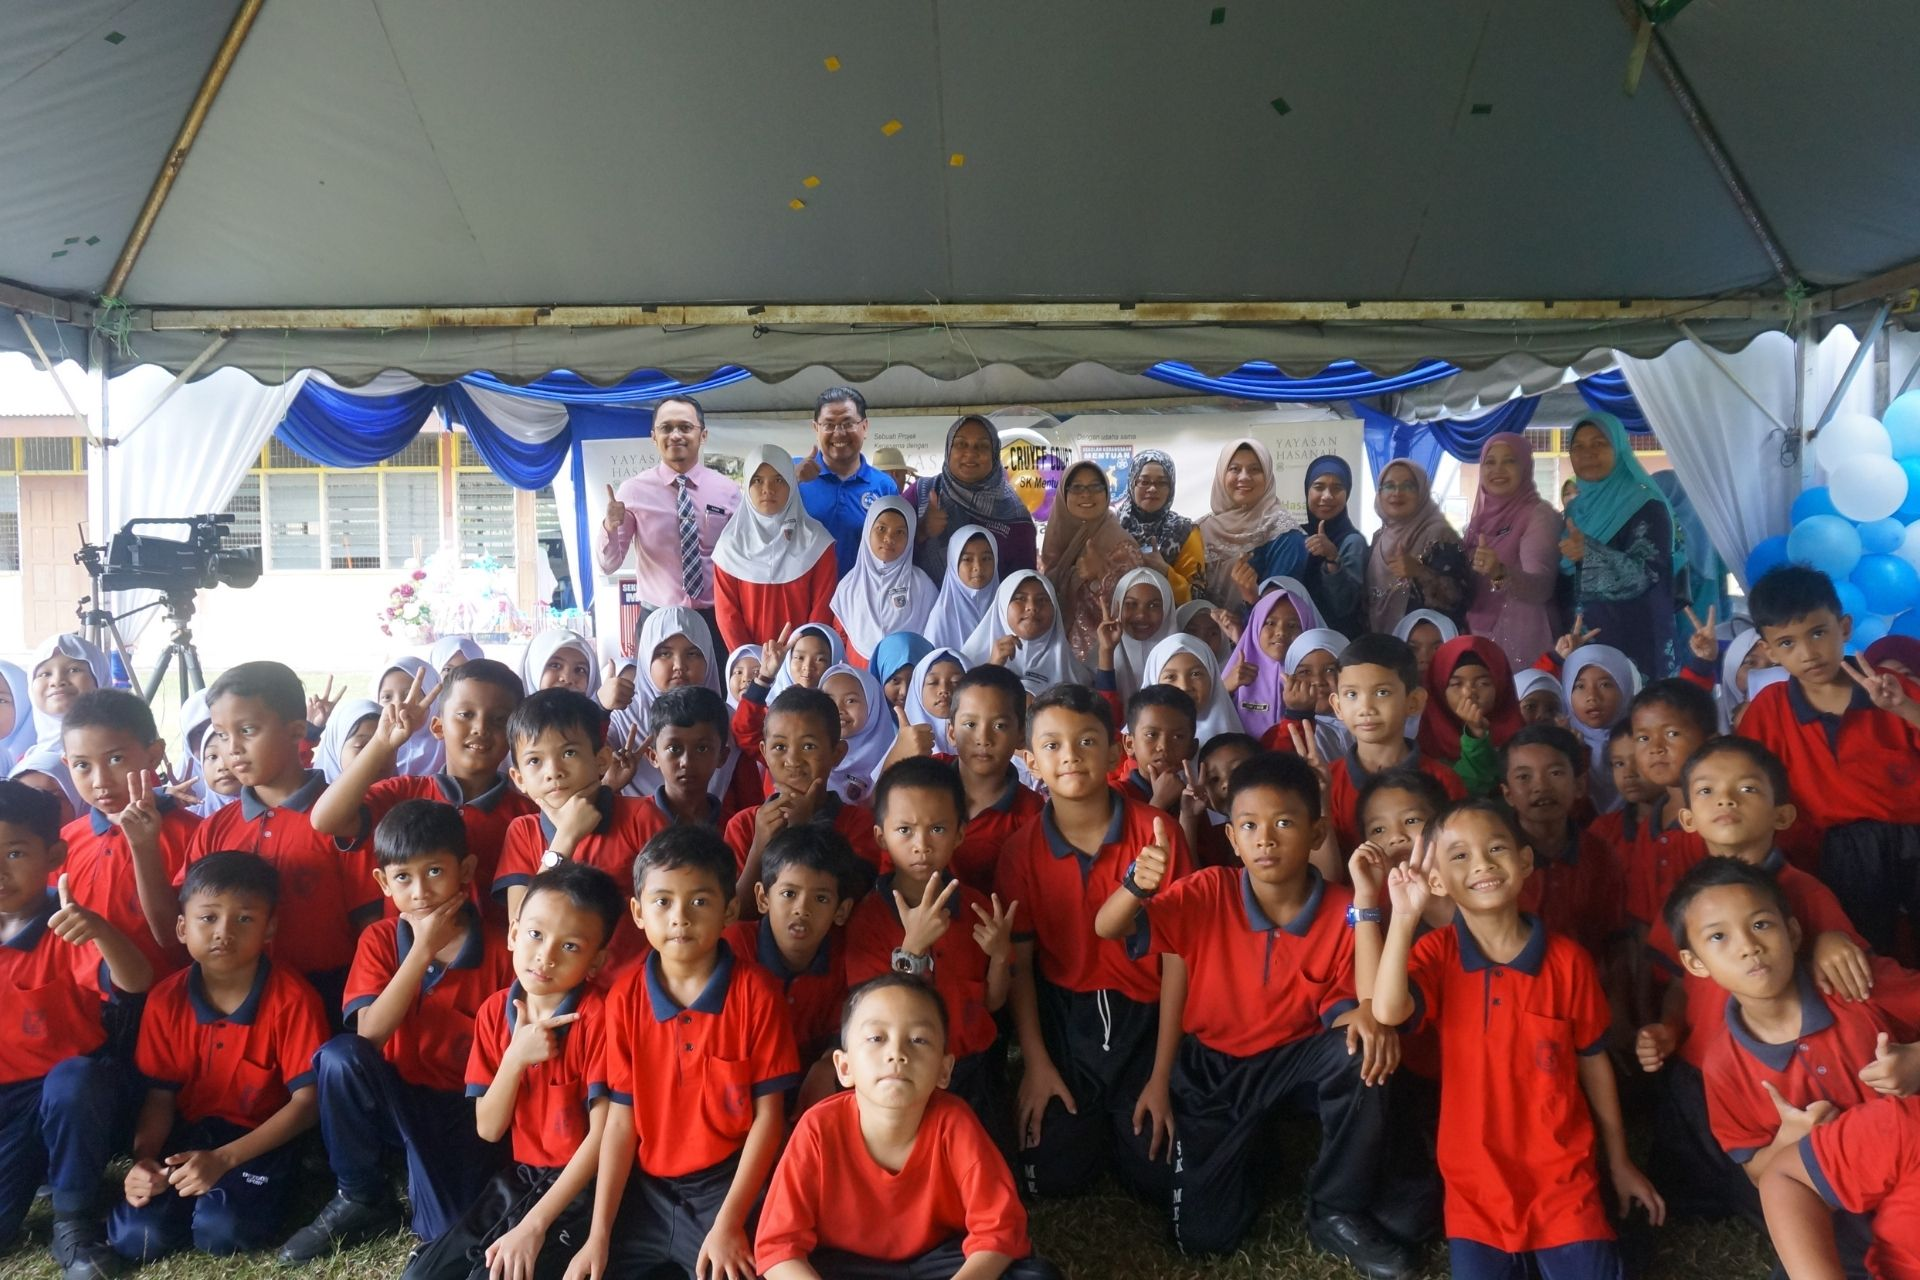 Yayasan Hasanah & The Growth of Civil Society